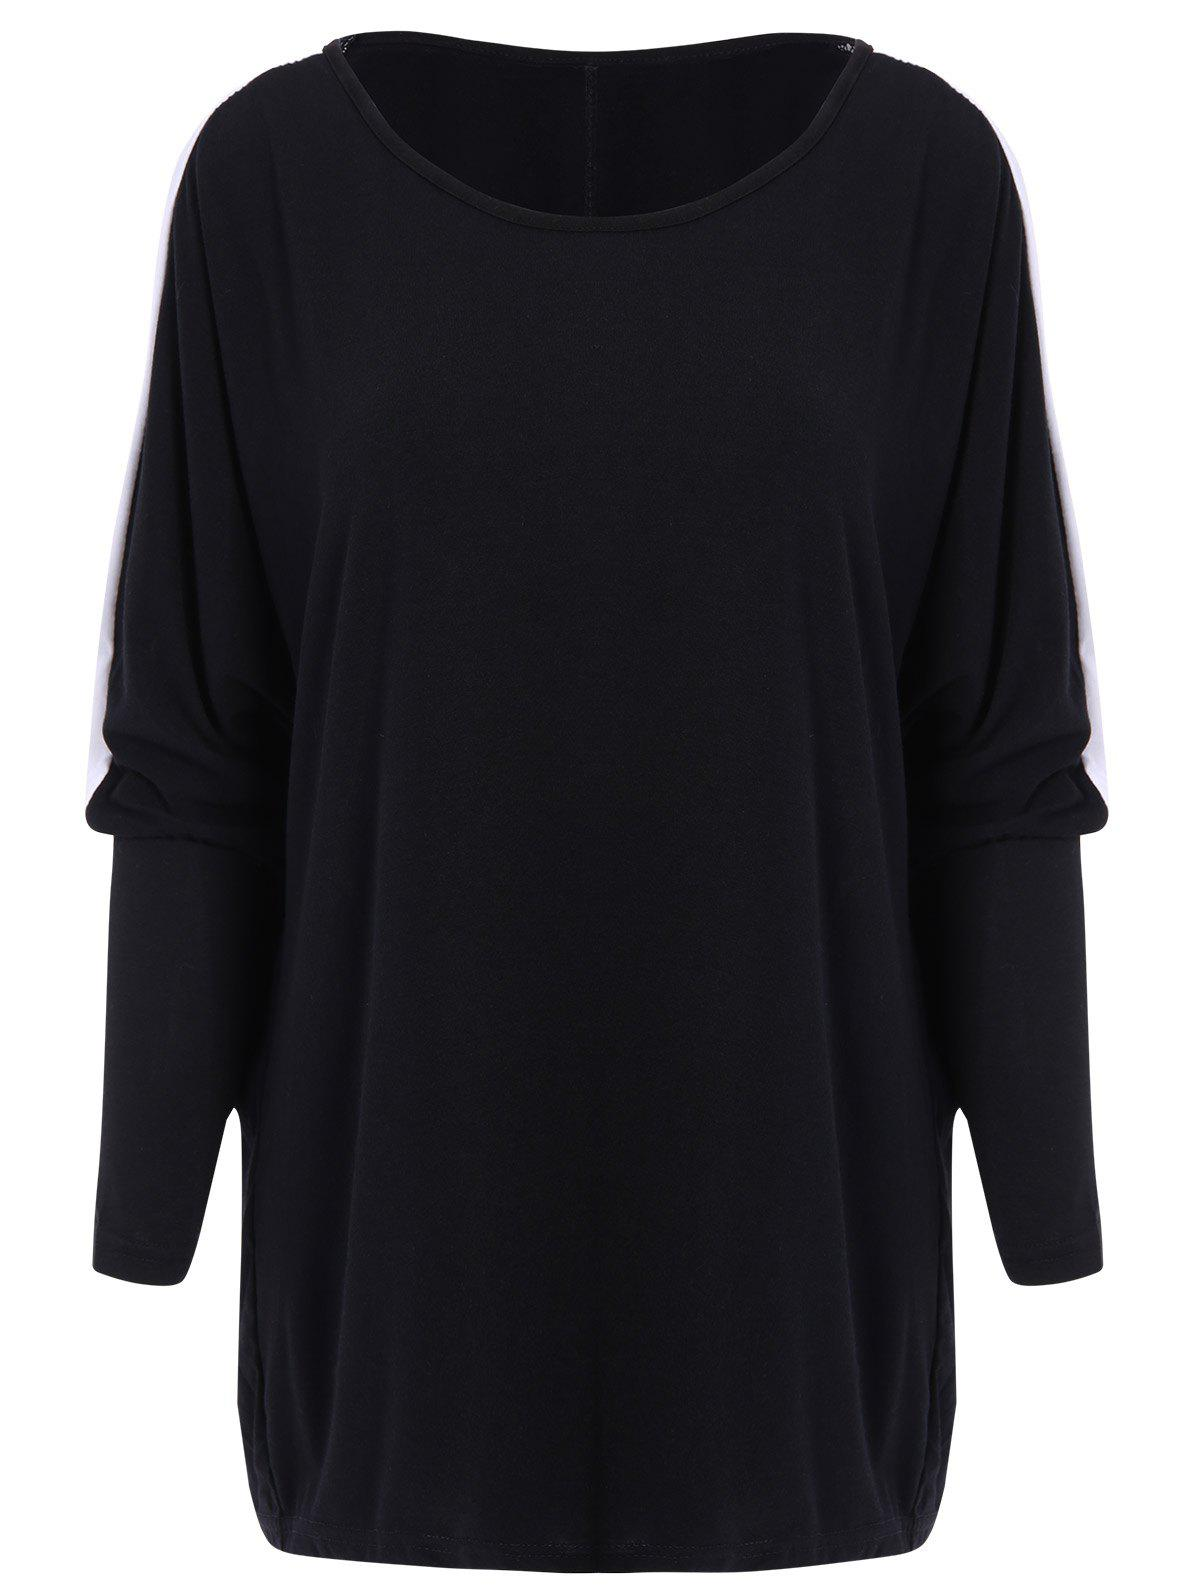 Trendy Color Block Loose-Fitting Style Bat-Wing Sleeves Scoop Neck Women's T-shirt